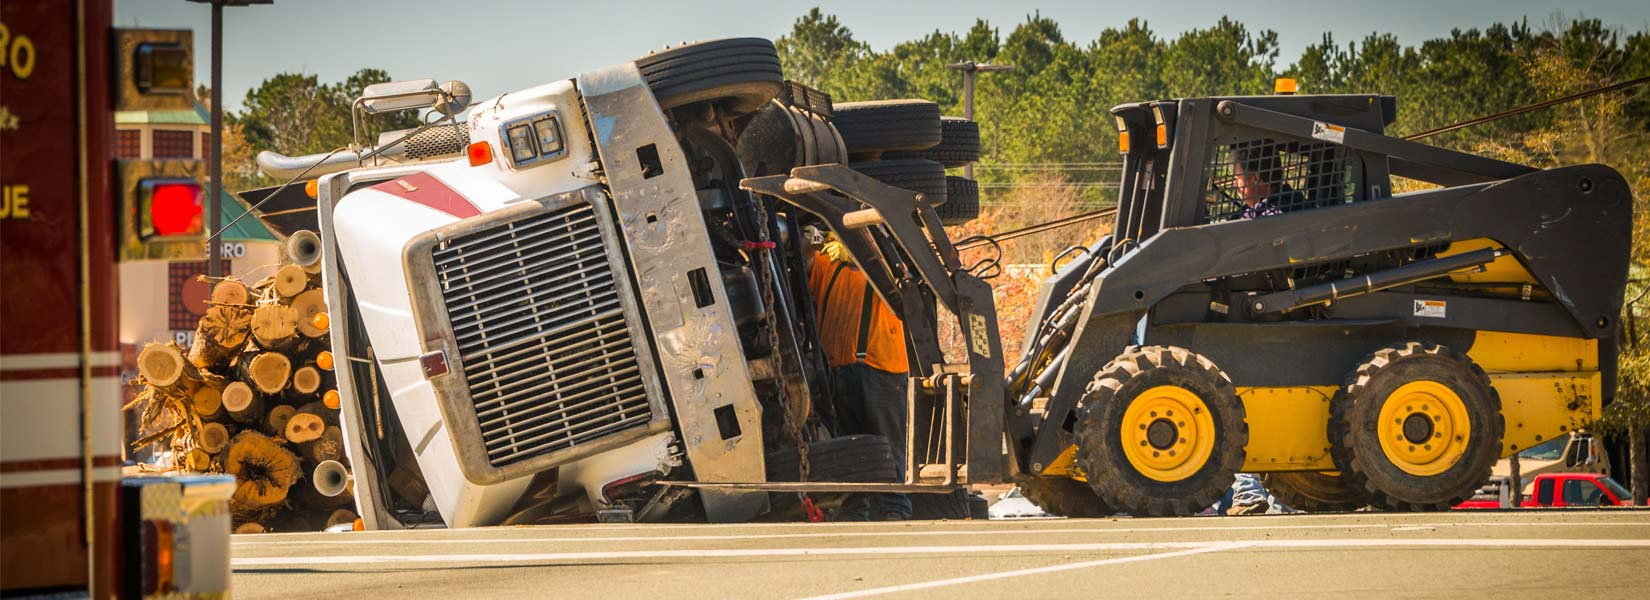 Most common causes for truck accident